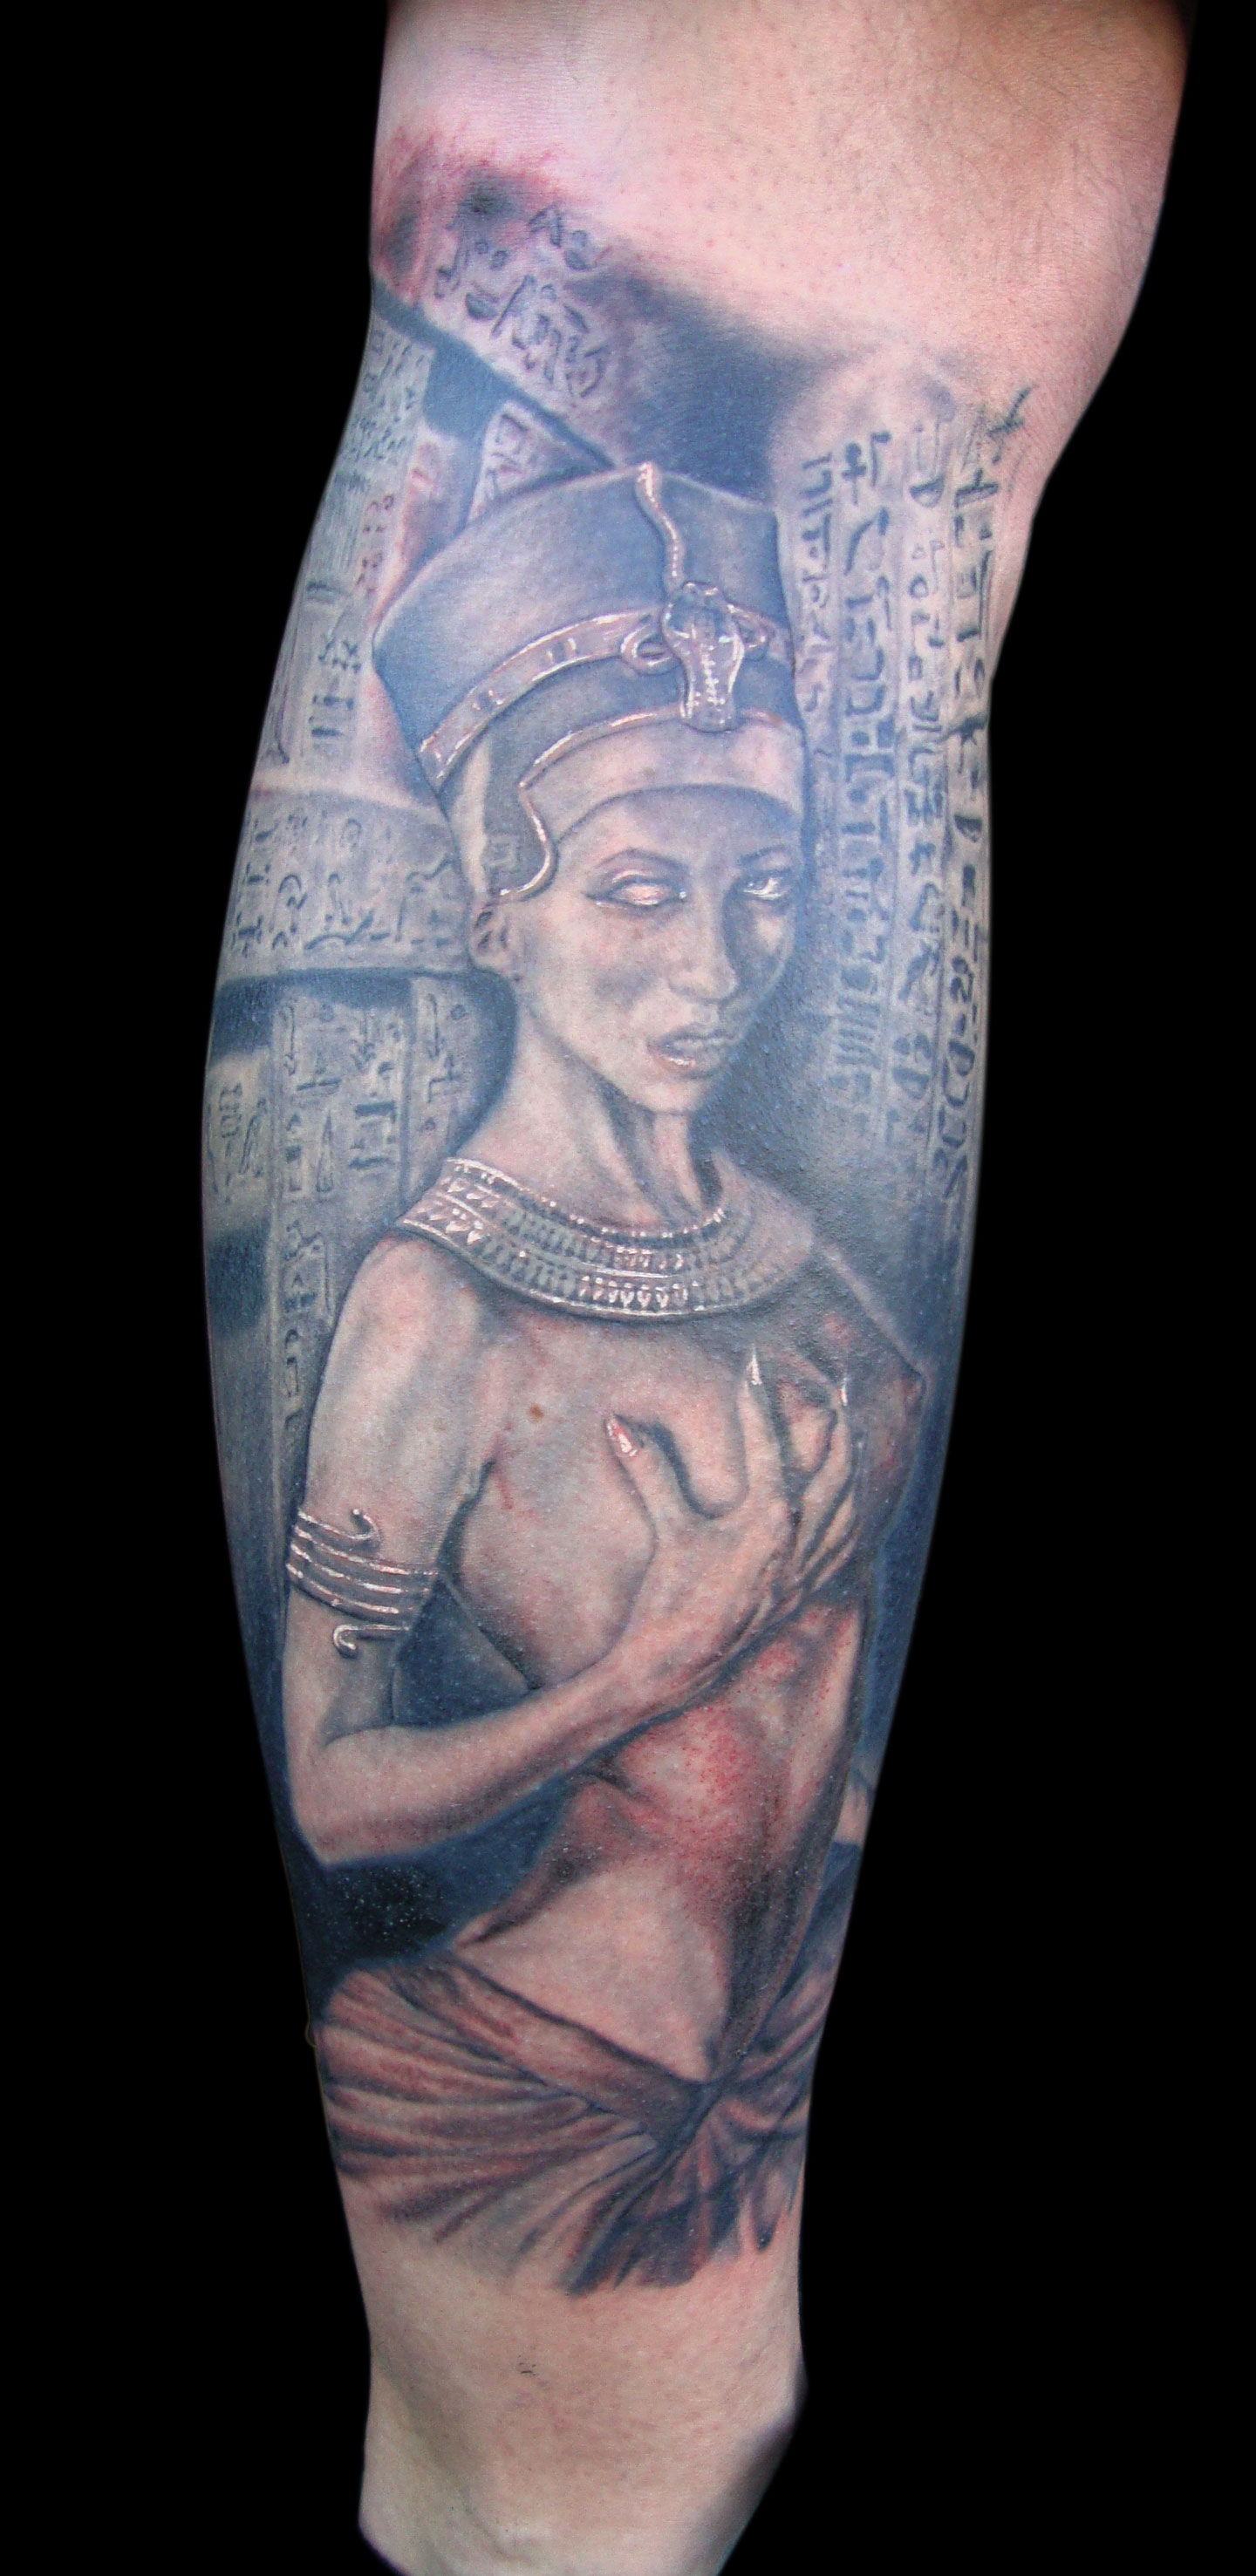 Black and Grey 'Undead' Nefertiti Tattoo, (photo taken at final session, most is healed except for the reddish parts)